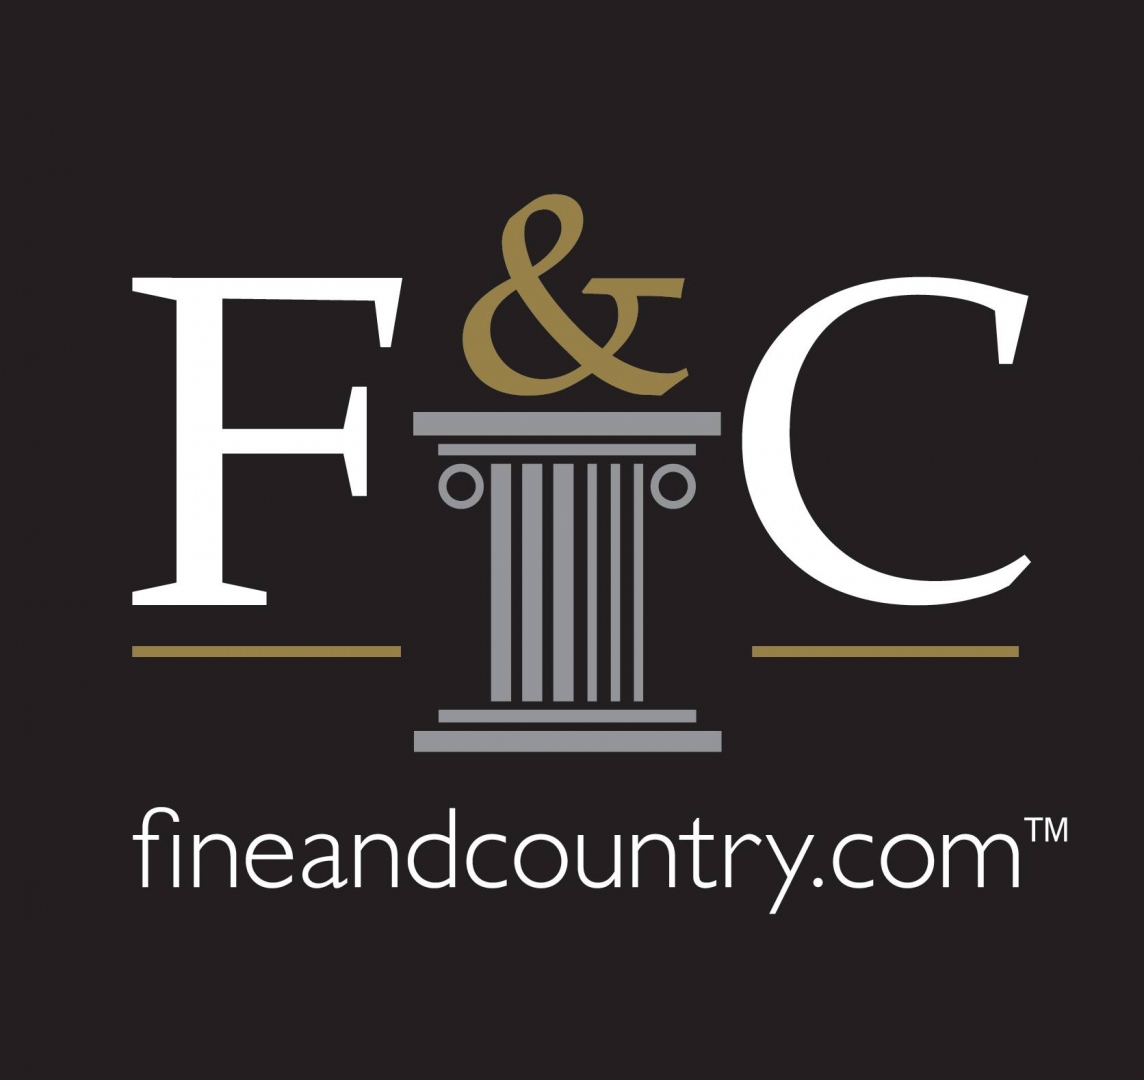 Fine & Country is the fastest-growing upmarket agency brand